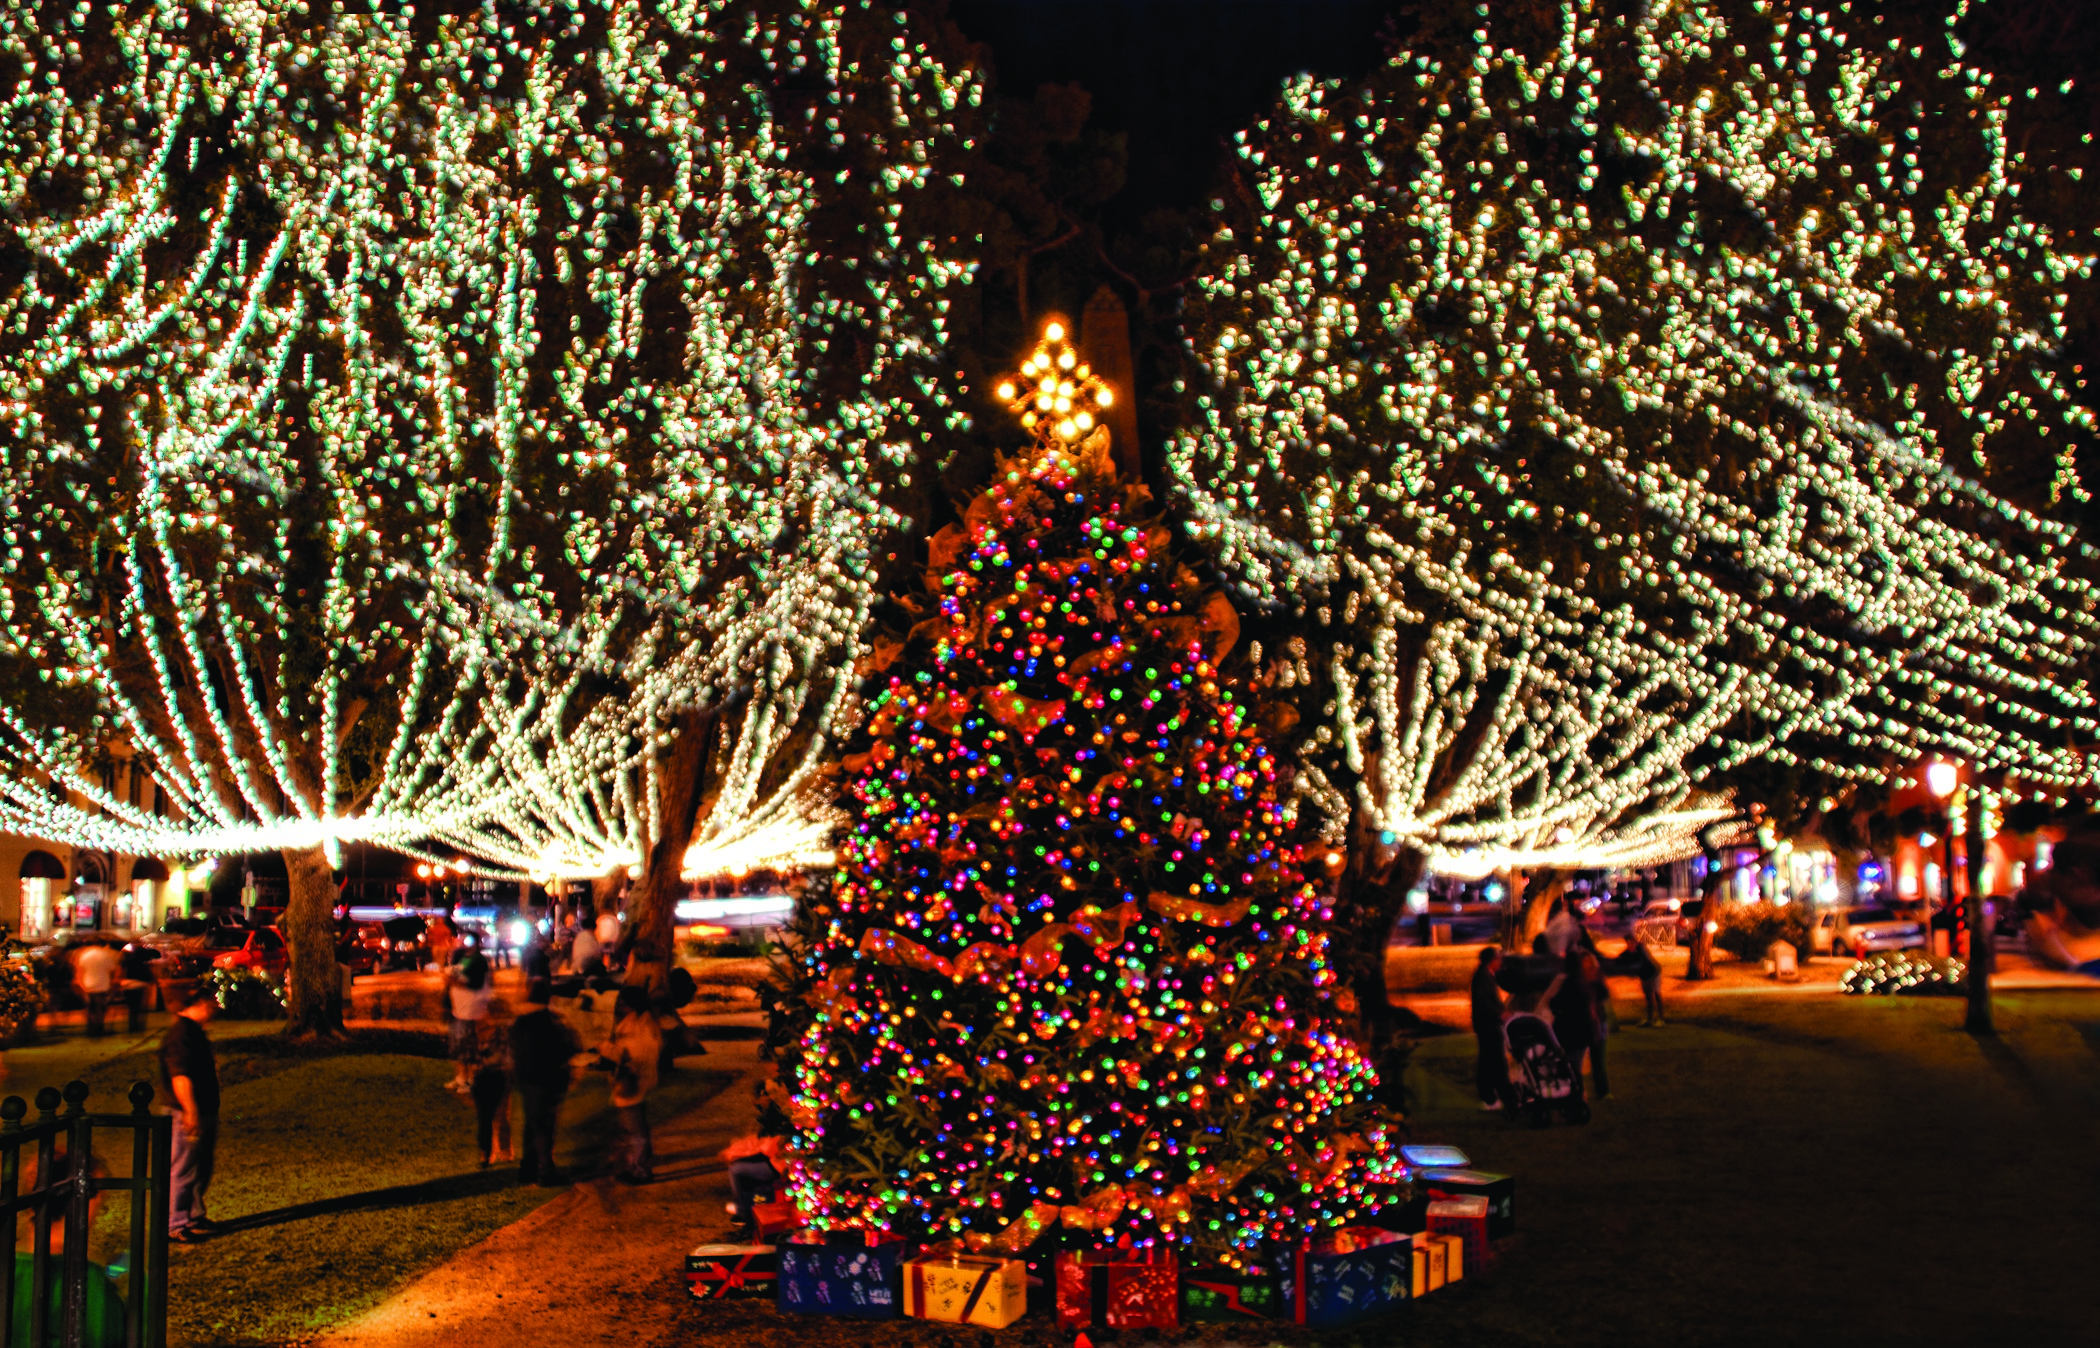 How to extend the age of a lively Christmas tree